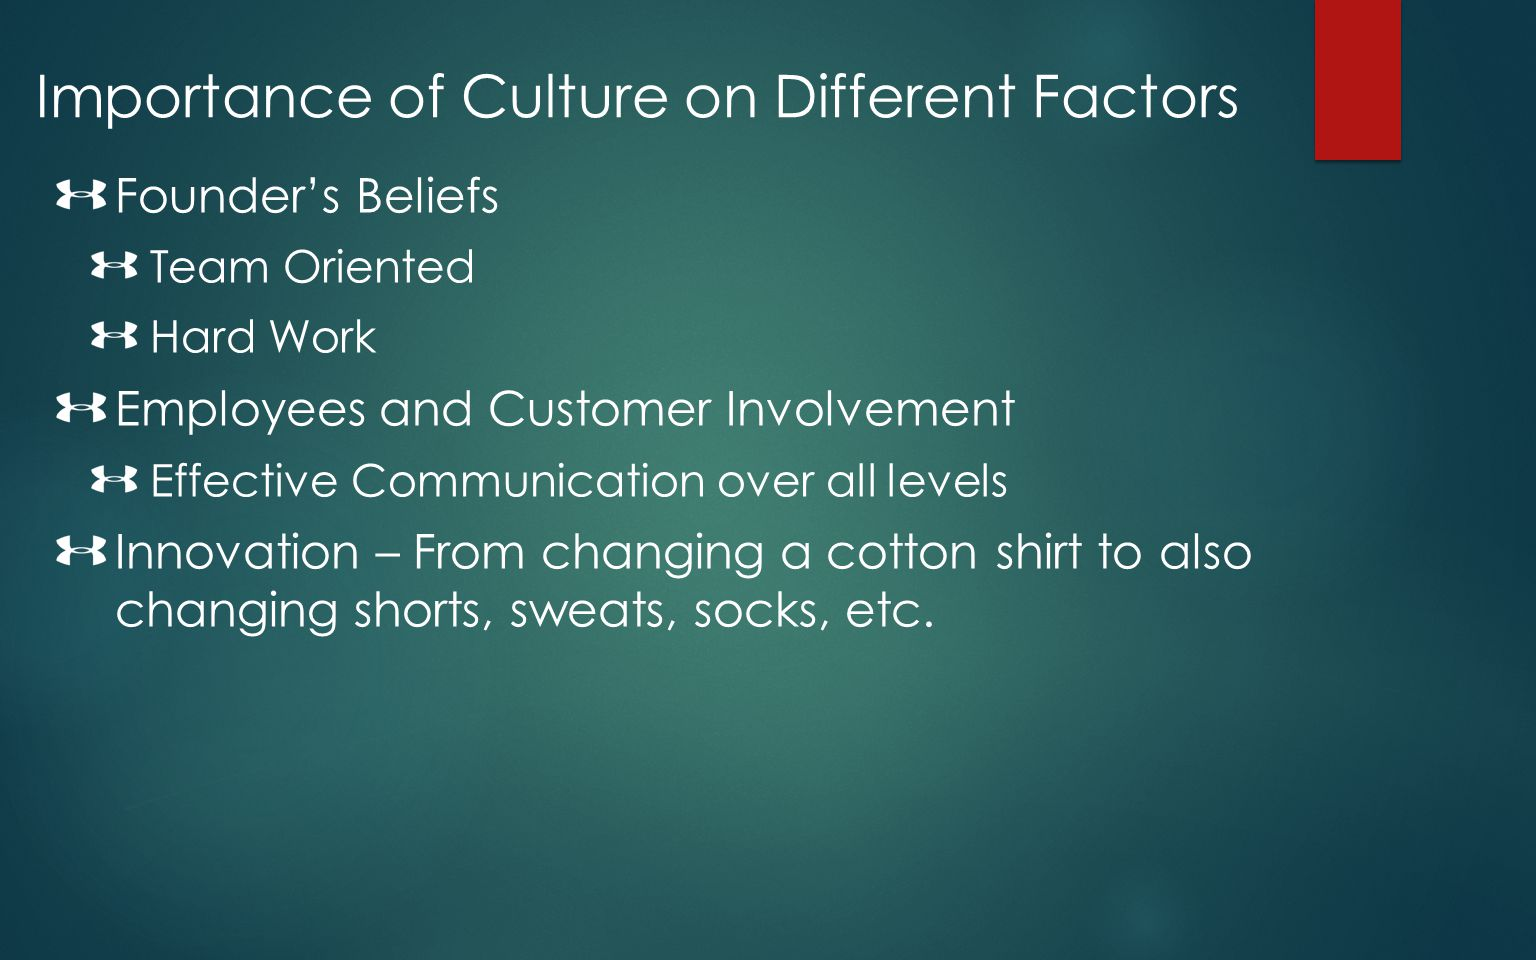 Importance of Culture on Different Factors